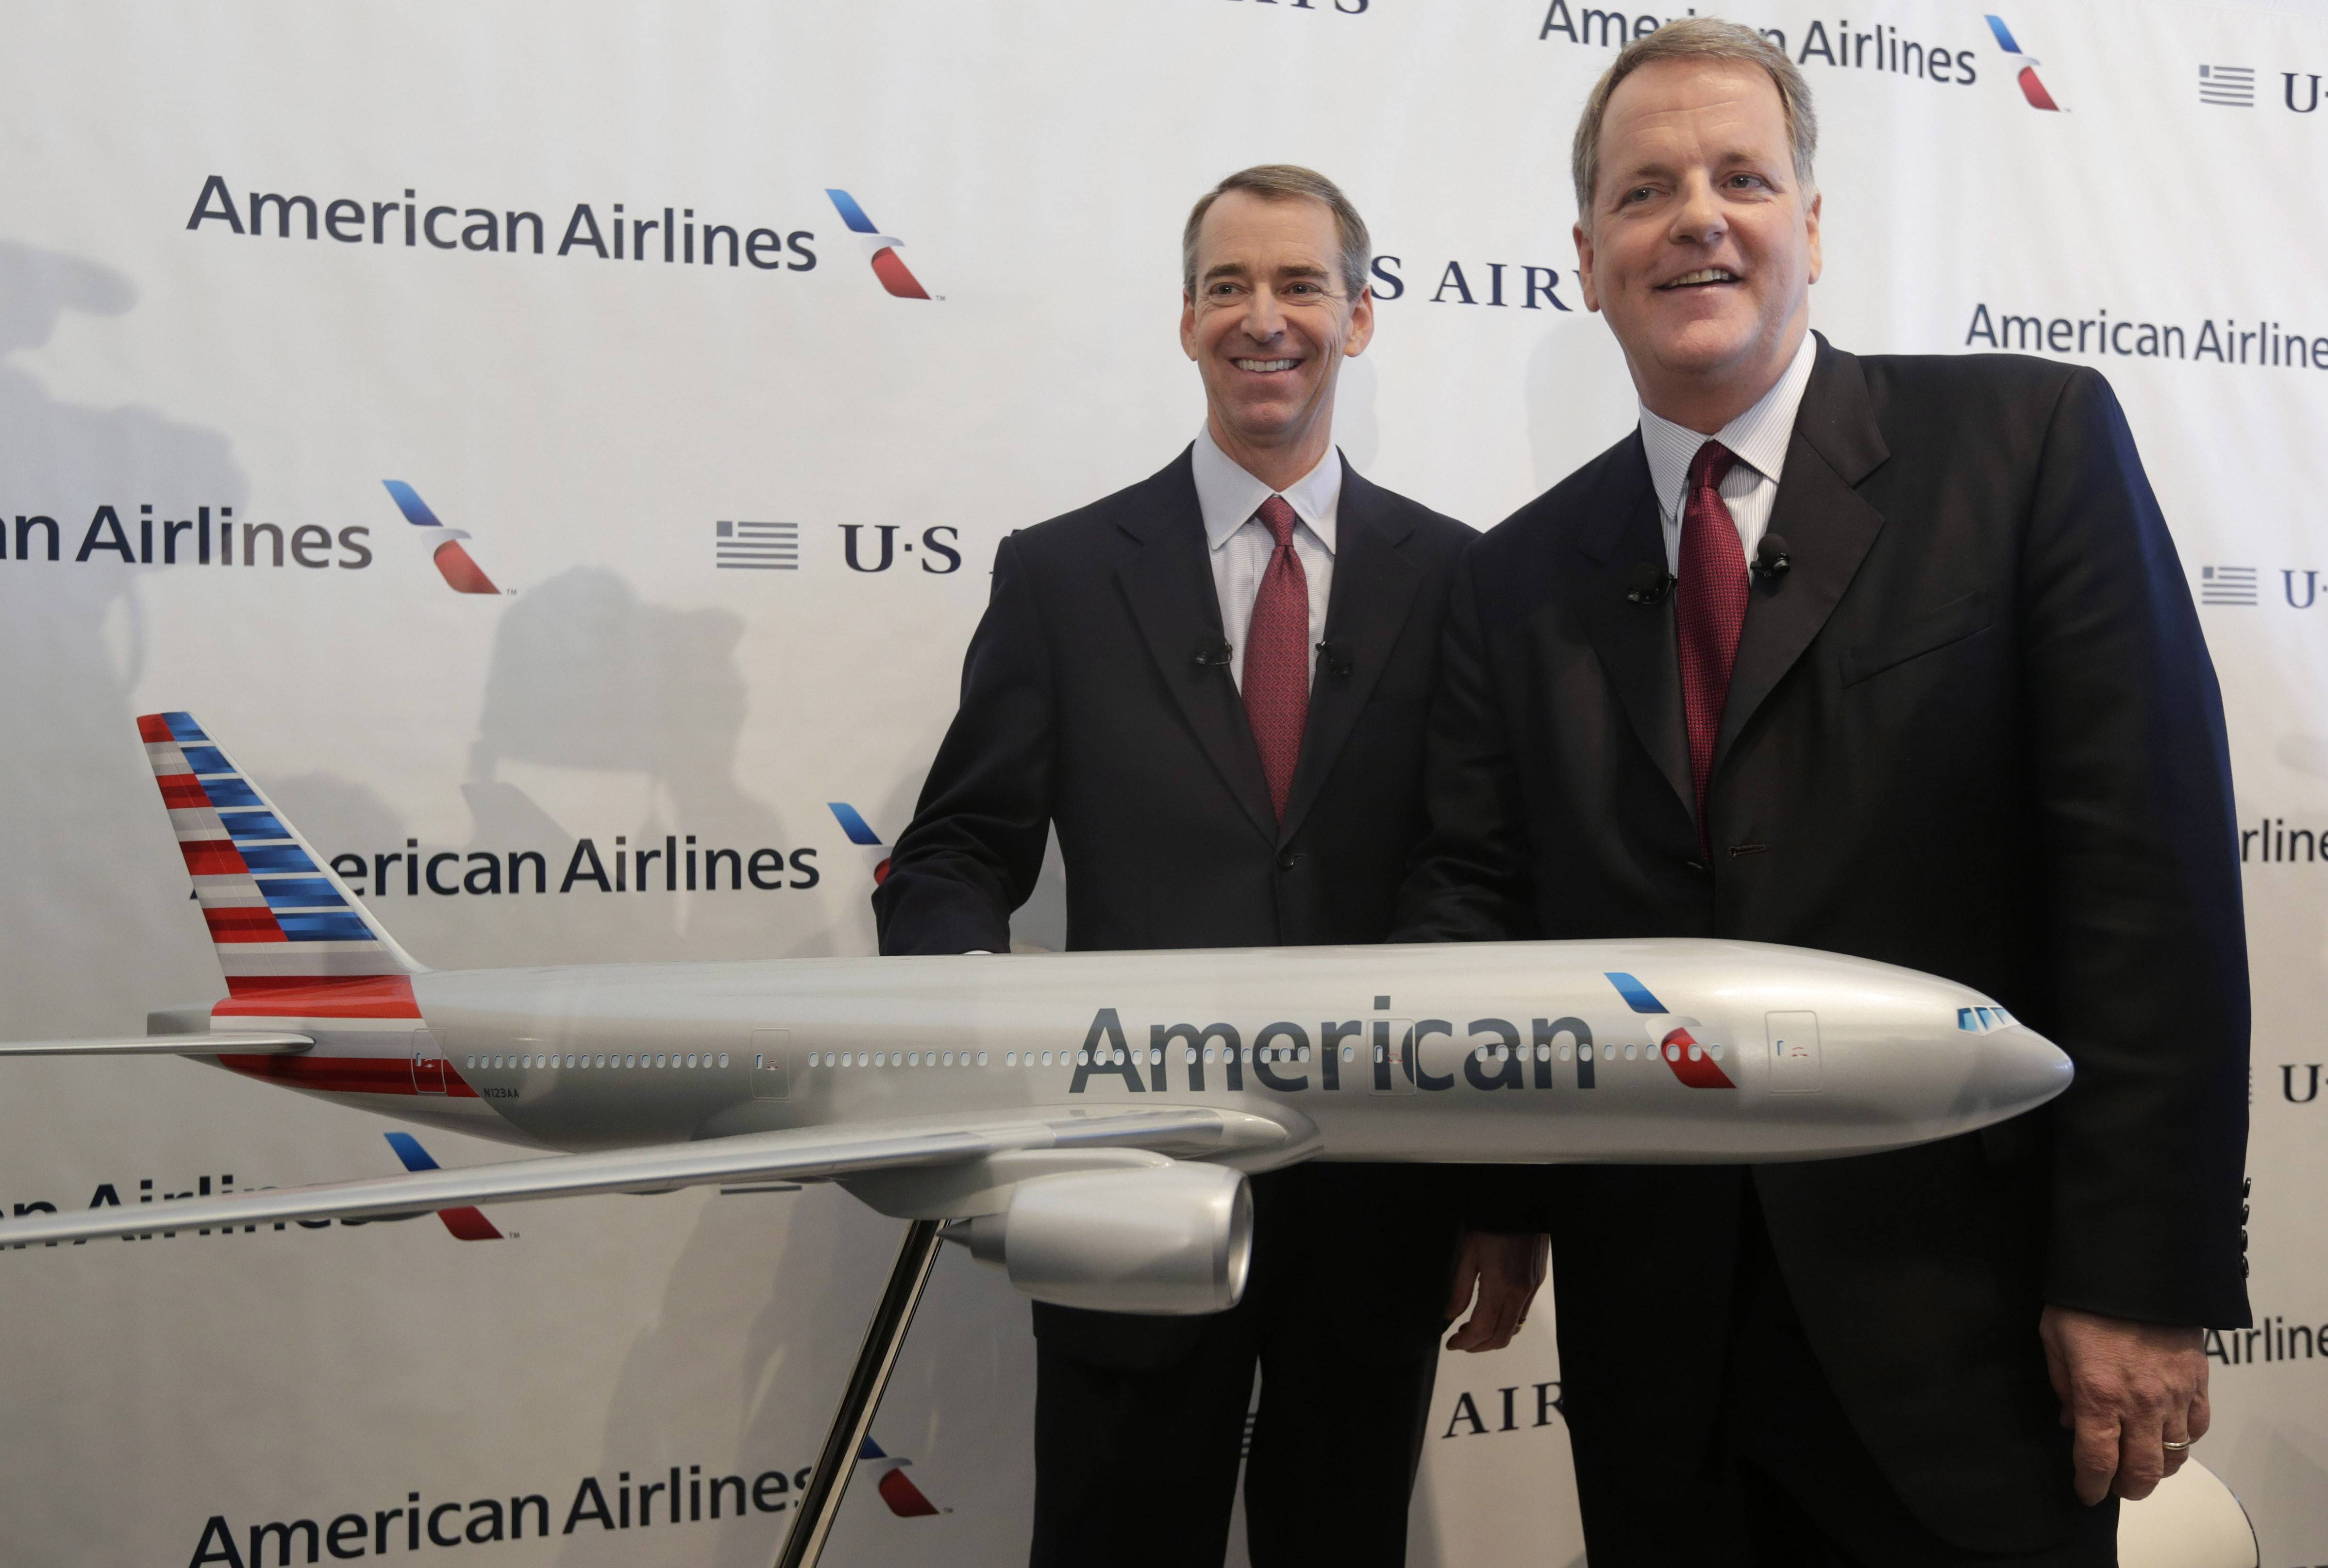 U.S. Airways CEO Doug Parker, right, and American Airlines CEO Tom Horton pose after a news conference at DFW International Airport.